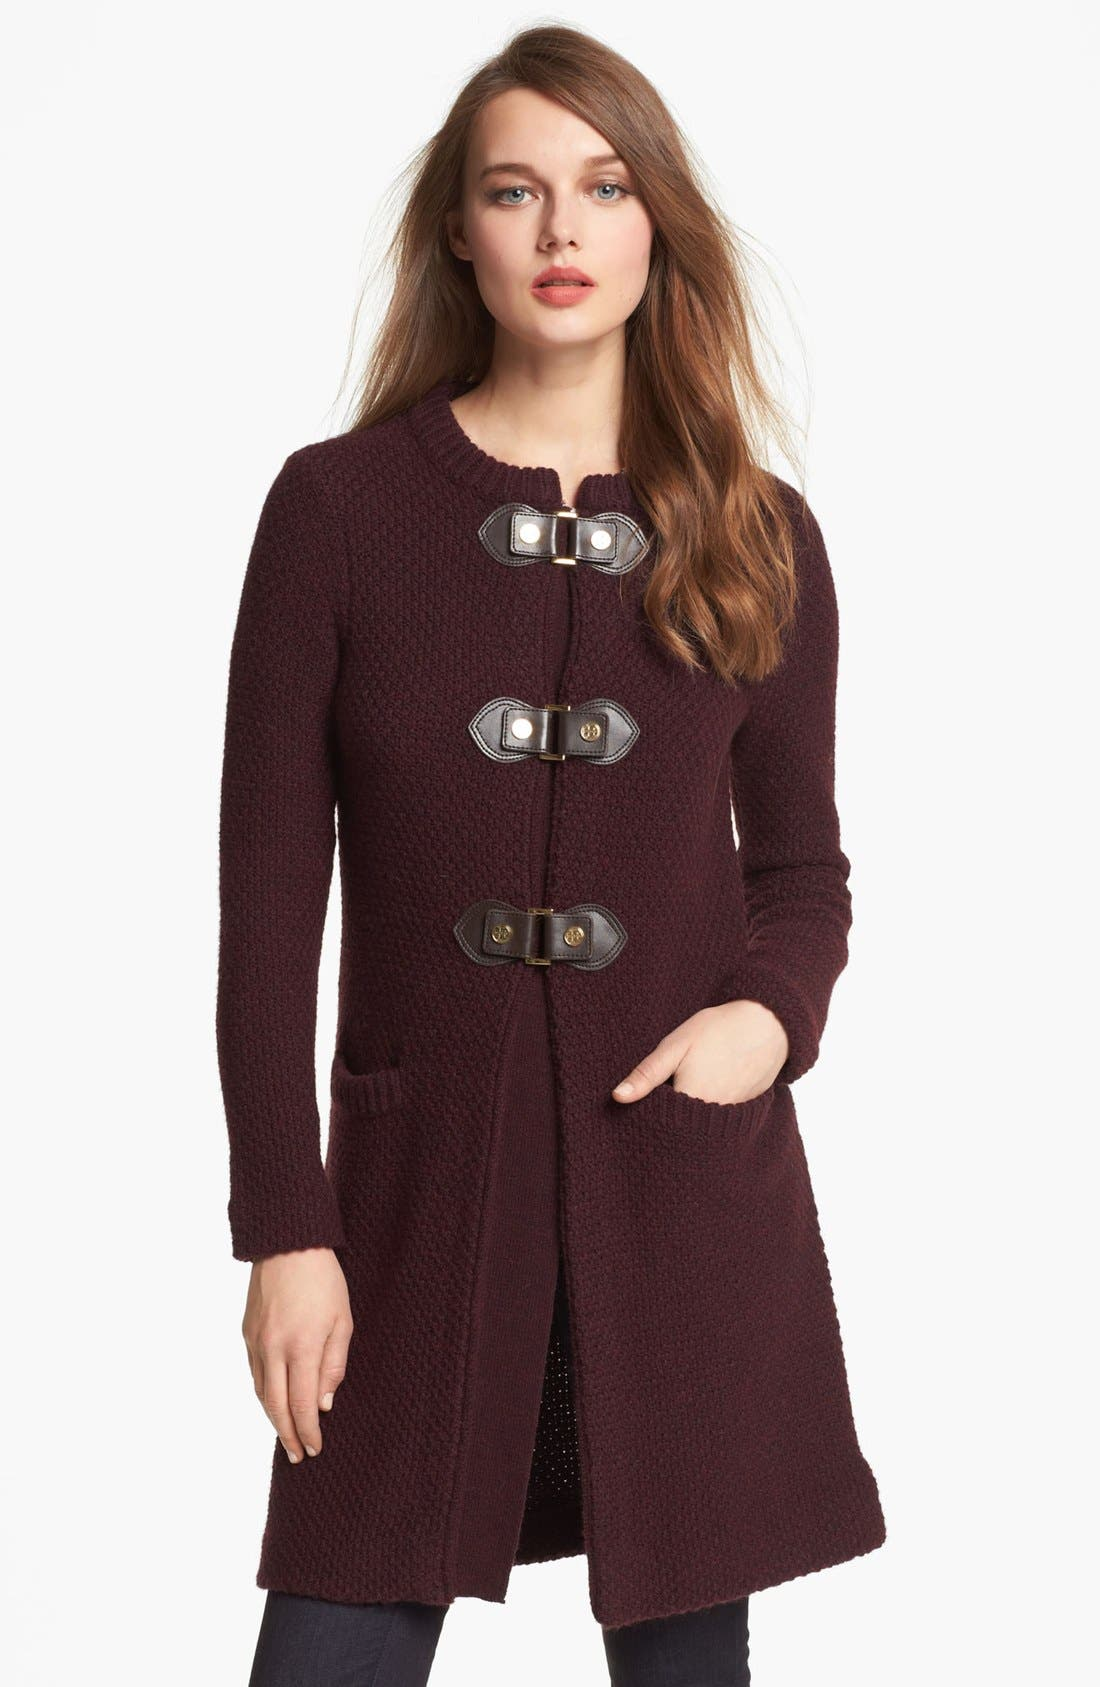 Main Image - Tory Burch 'Colette' Sweater Coat